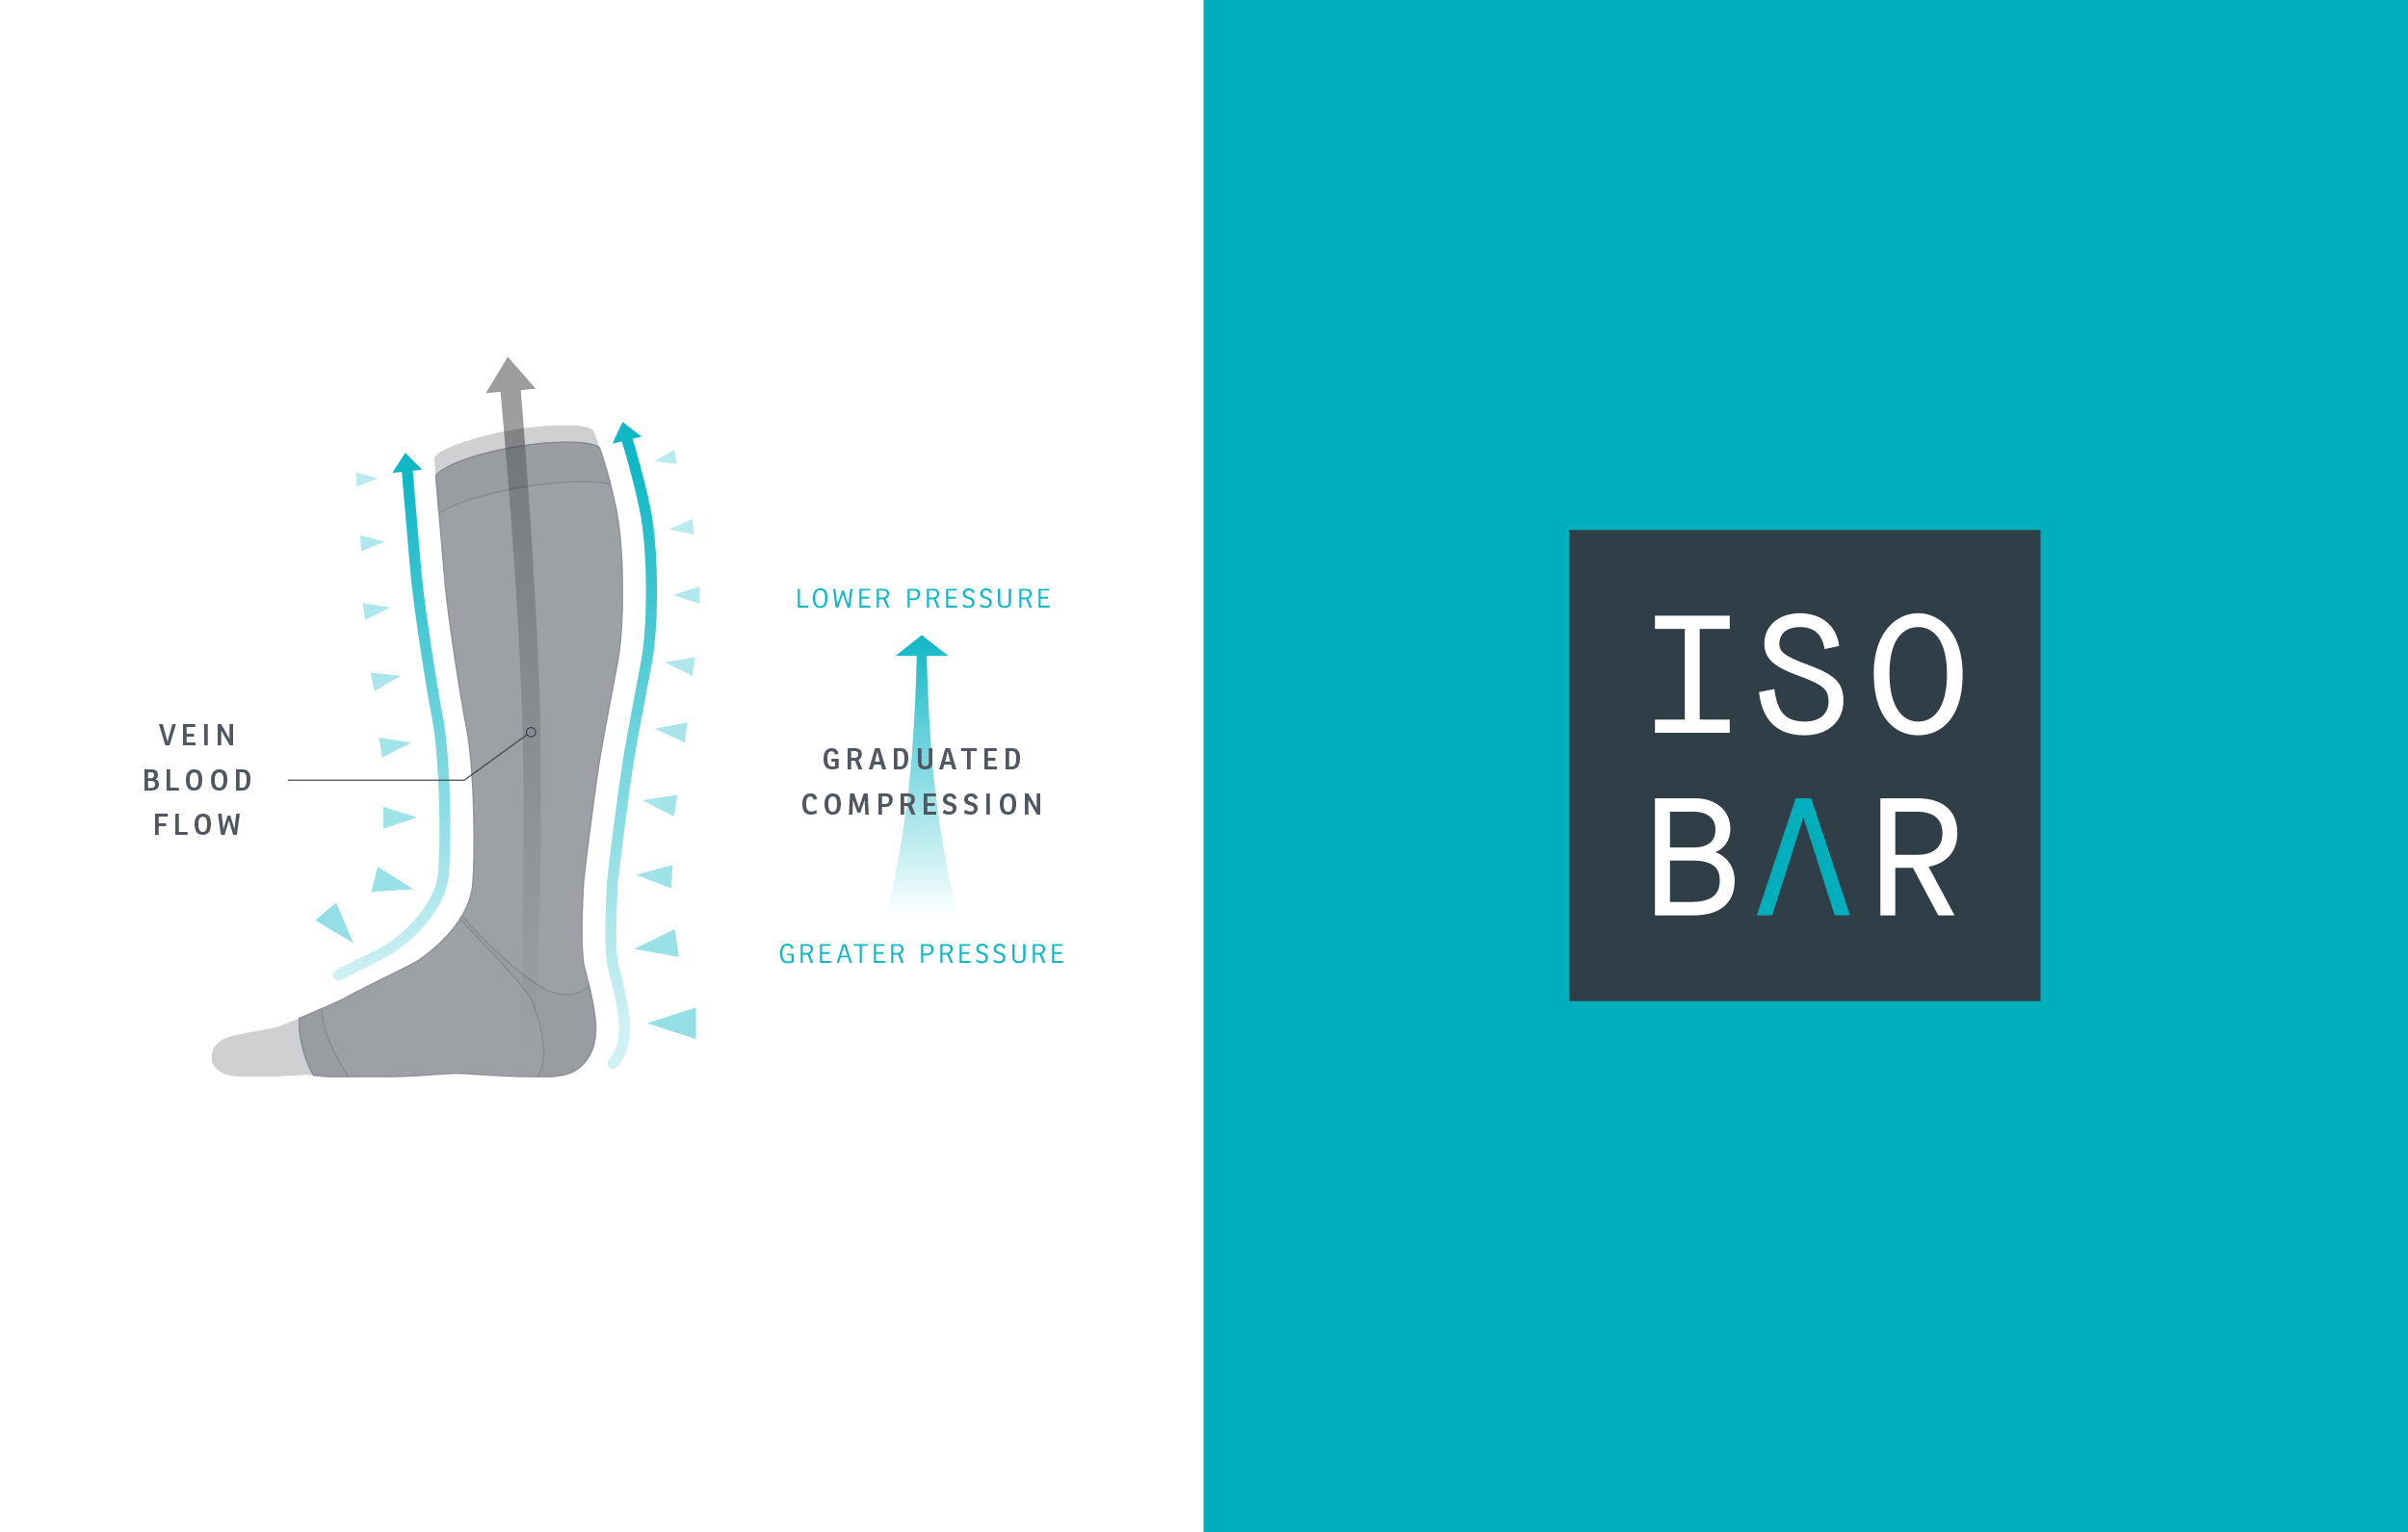 Isobar identity – designed around the insight that they pump blood back to the heart more effectively | design by Ian Whalley